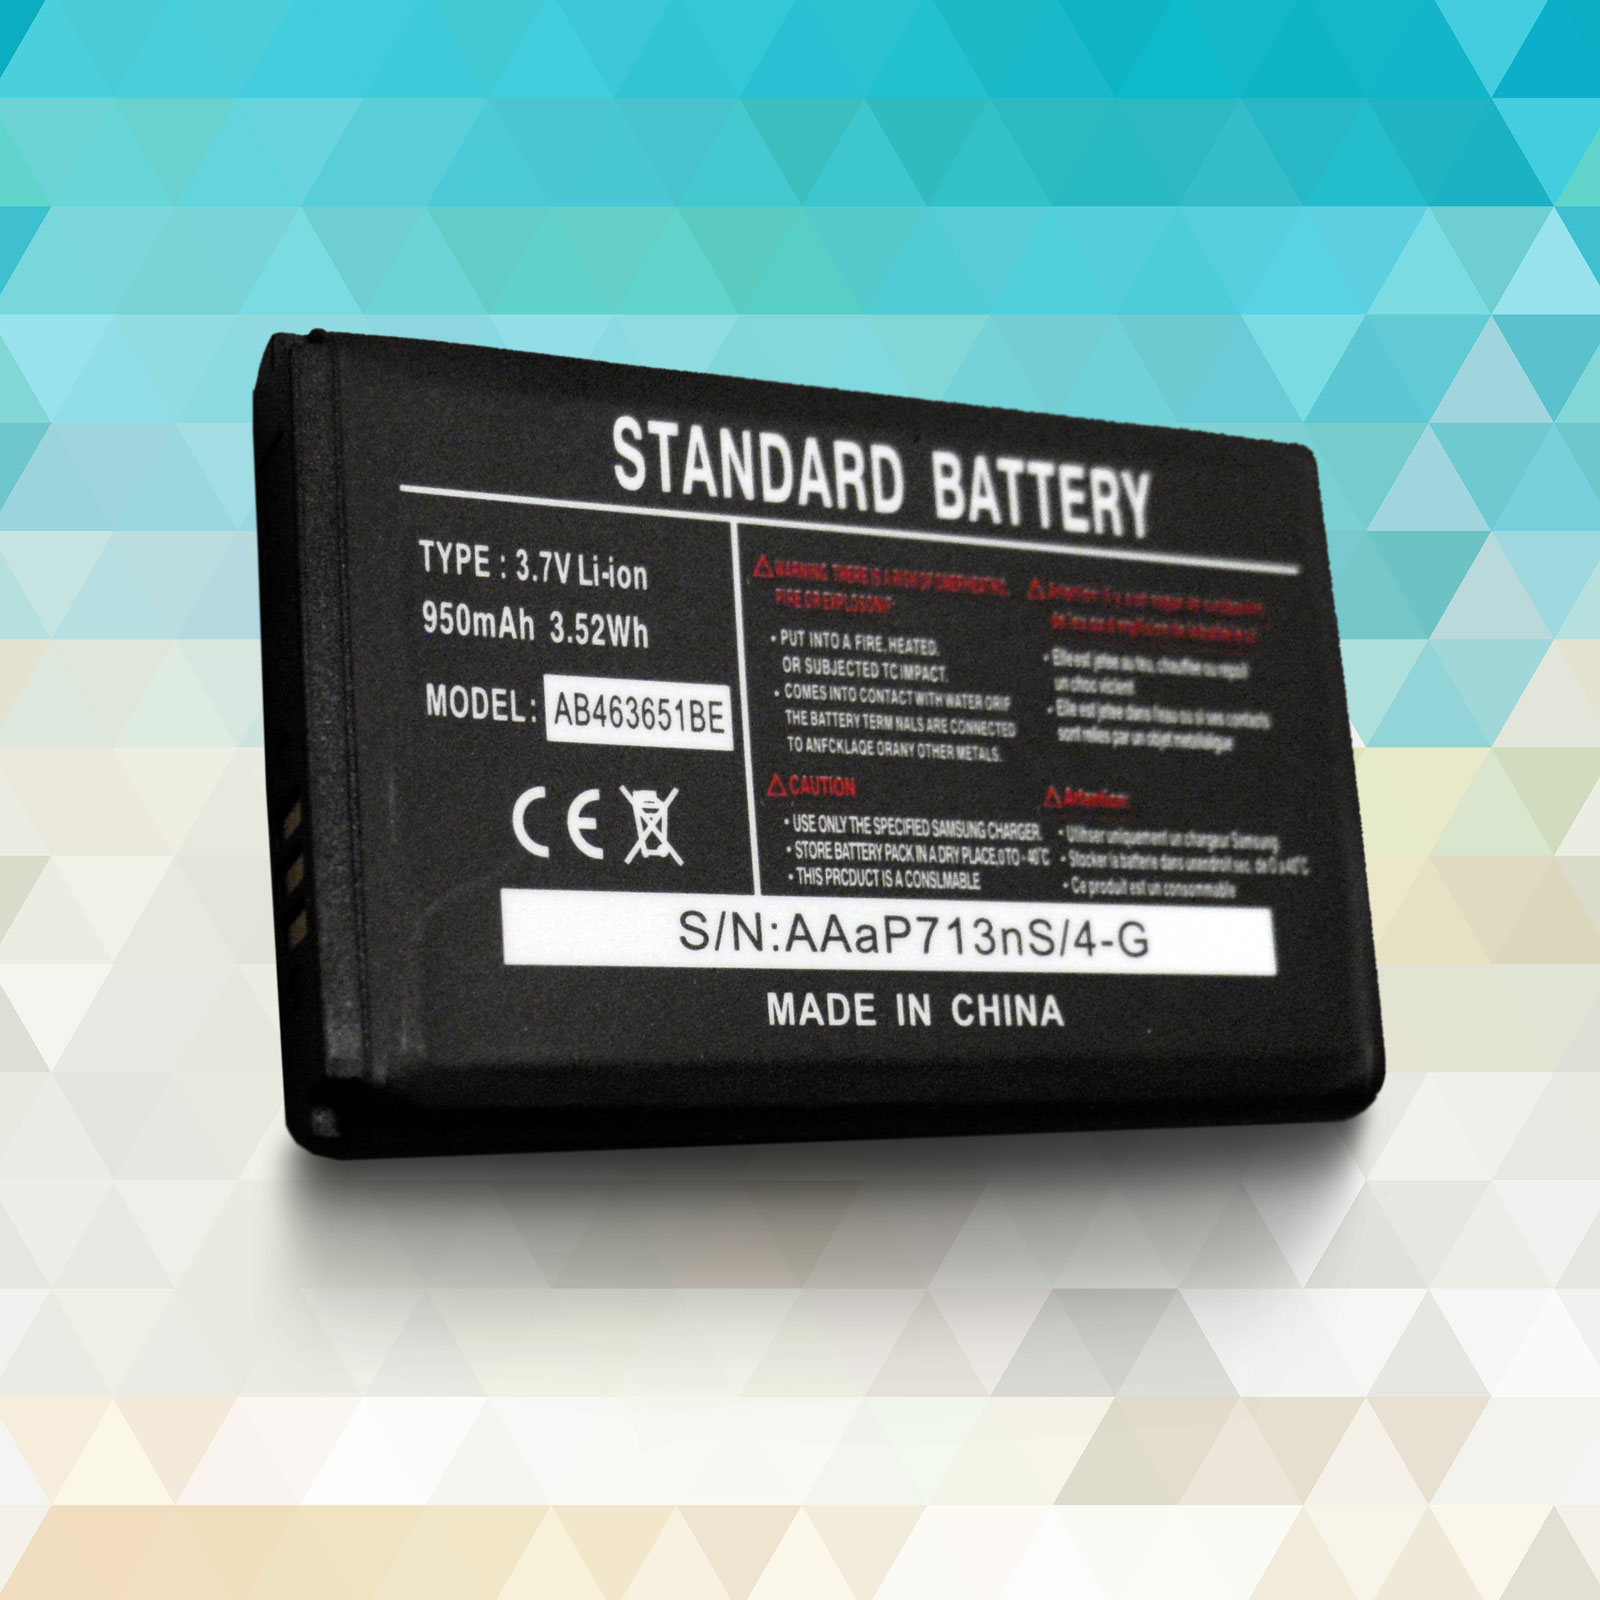 New cell phone battery for samsung ativ s gt i8750 i8750 omnia odyssey - Product Information